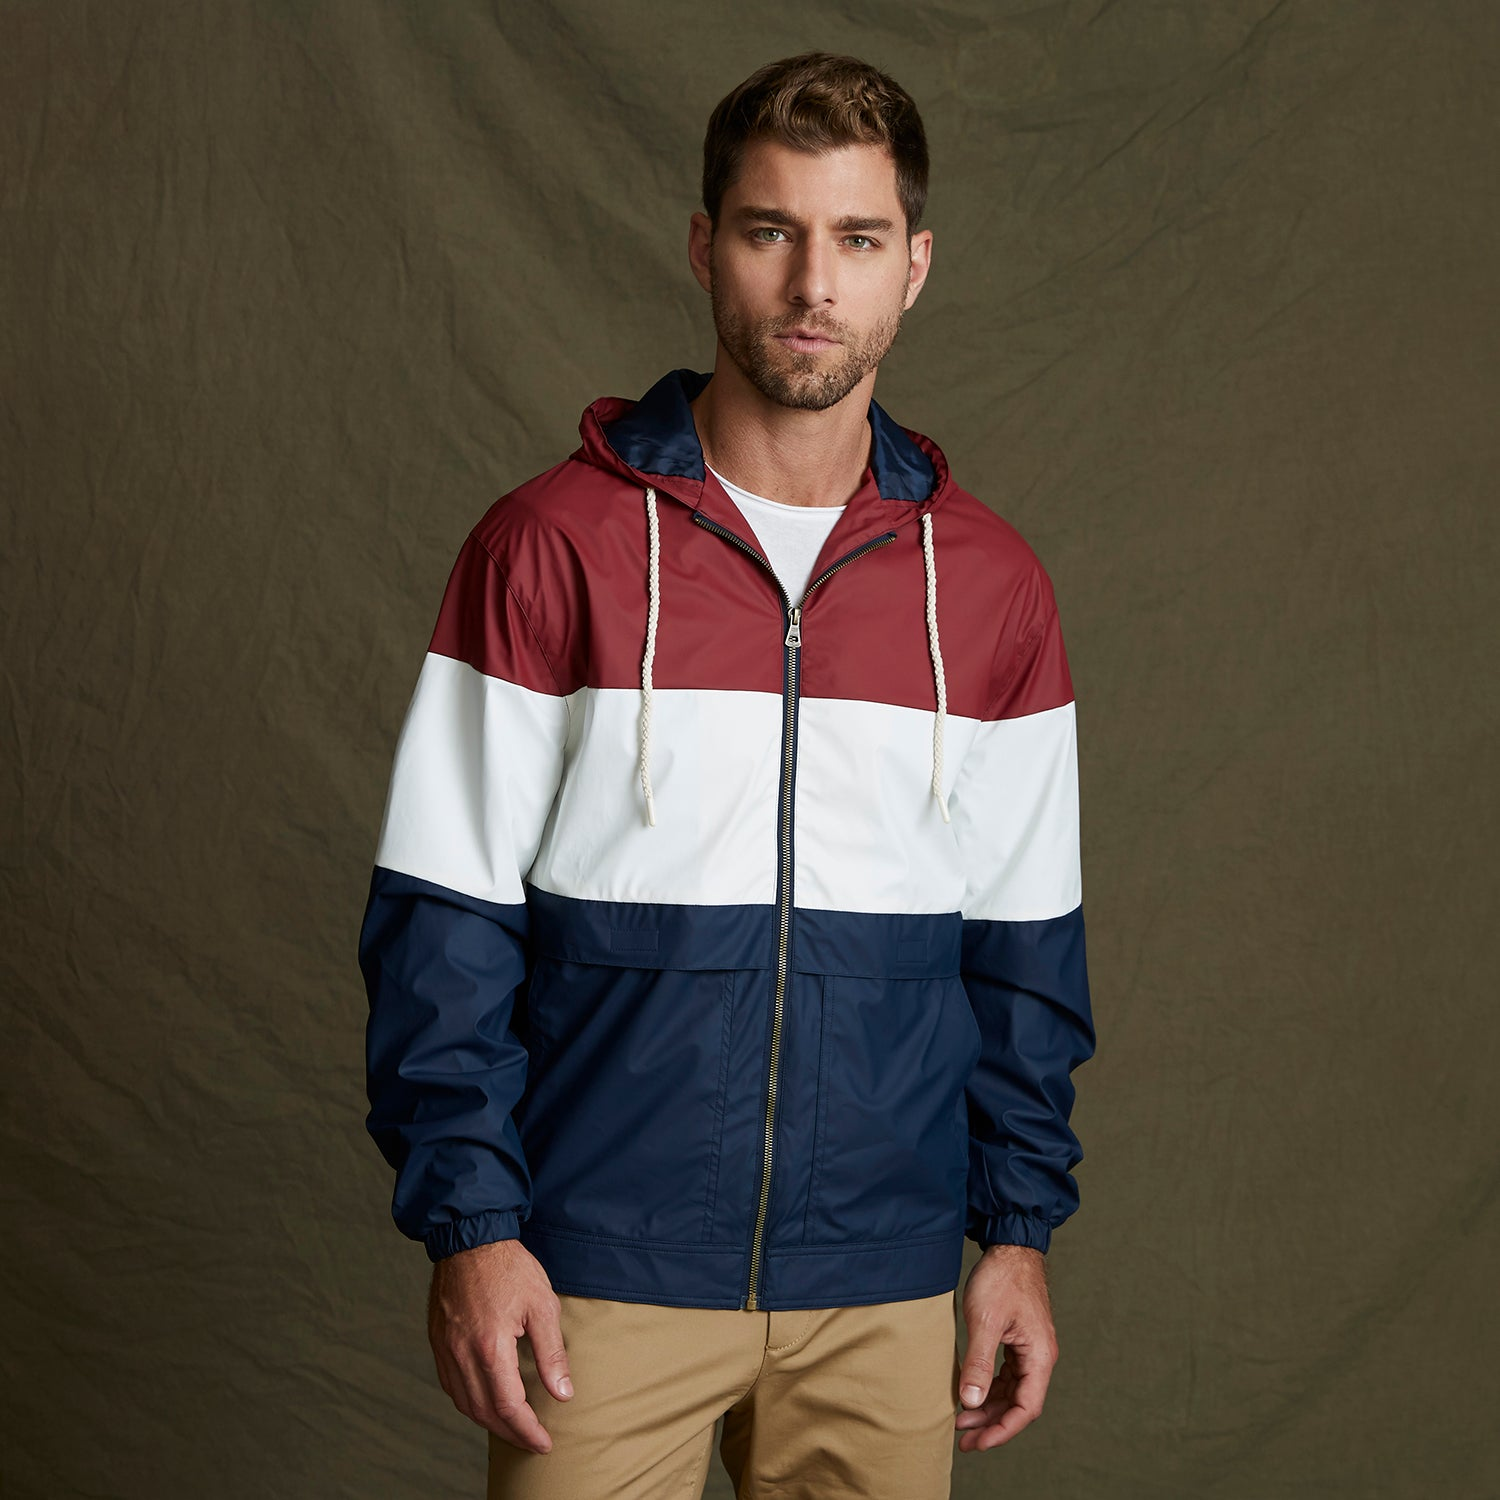 20601 - Weatherproof Vintage Colorblock Rain Jacket